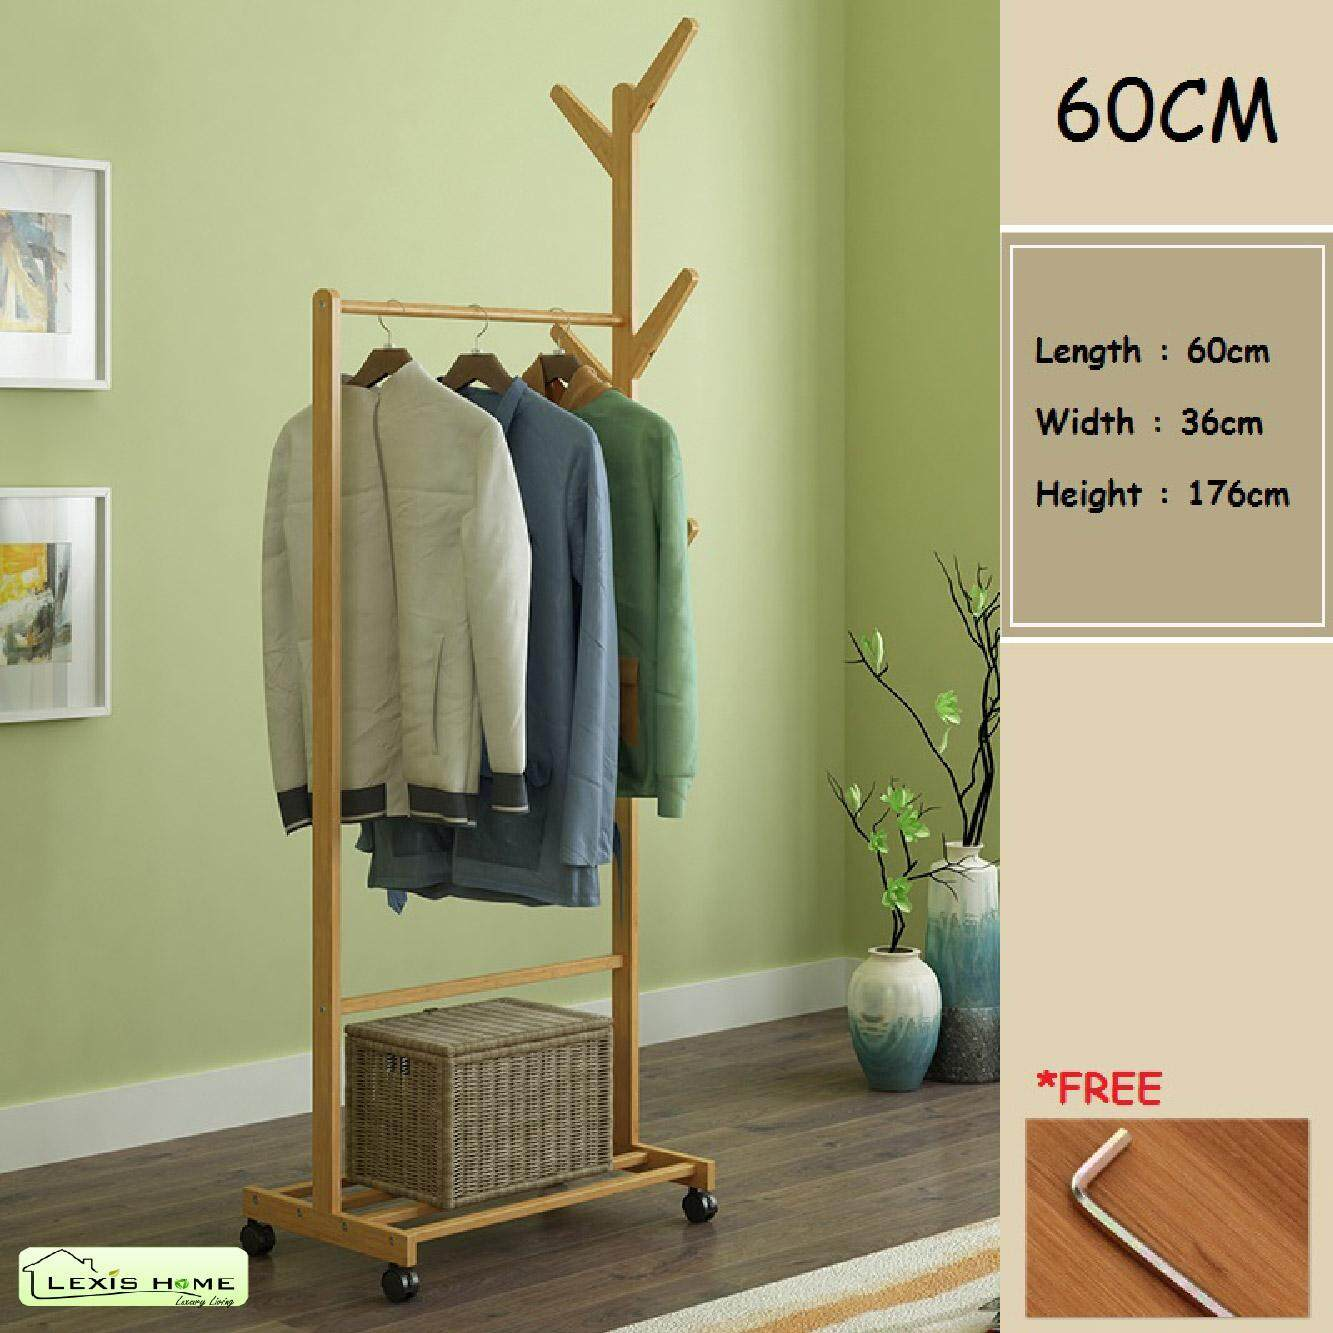 Lexis Home: 176cm x 60cm Clothes Hanger with Wheel (100% Bamboo Material)